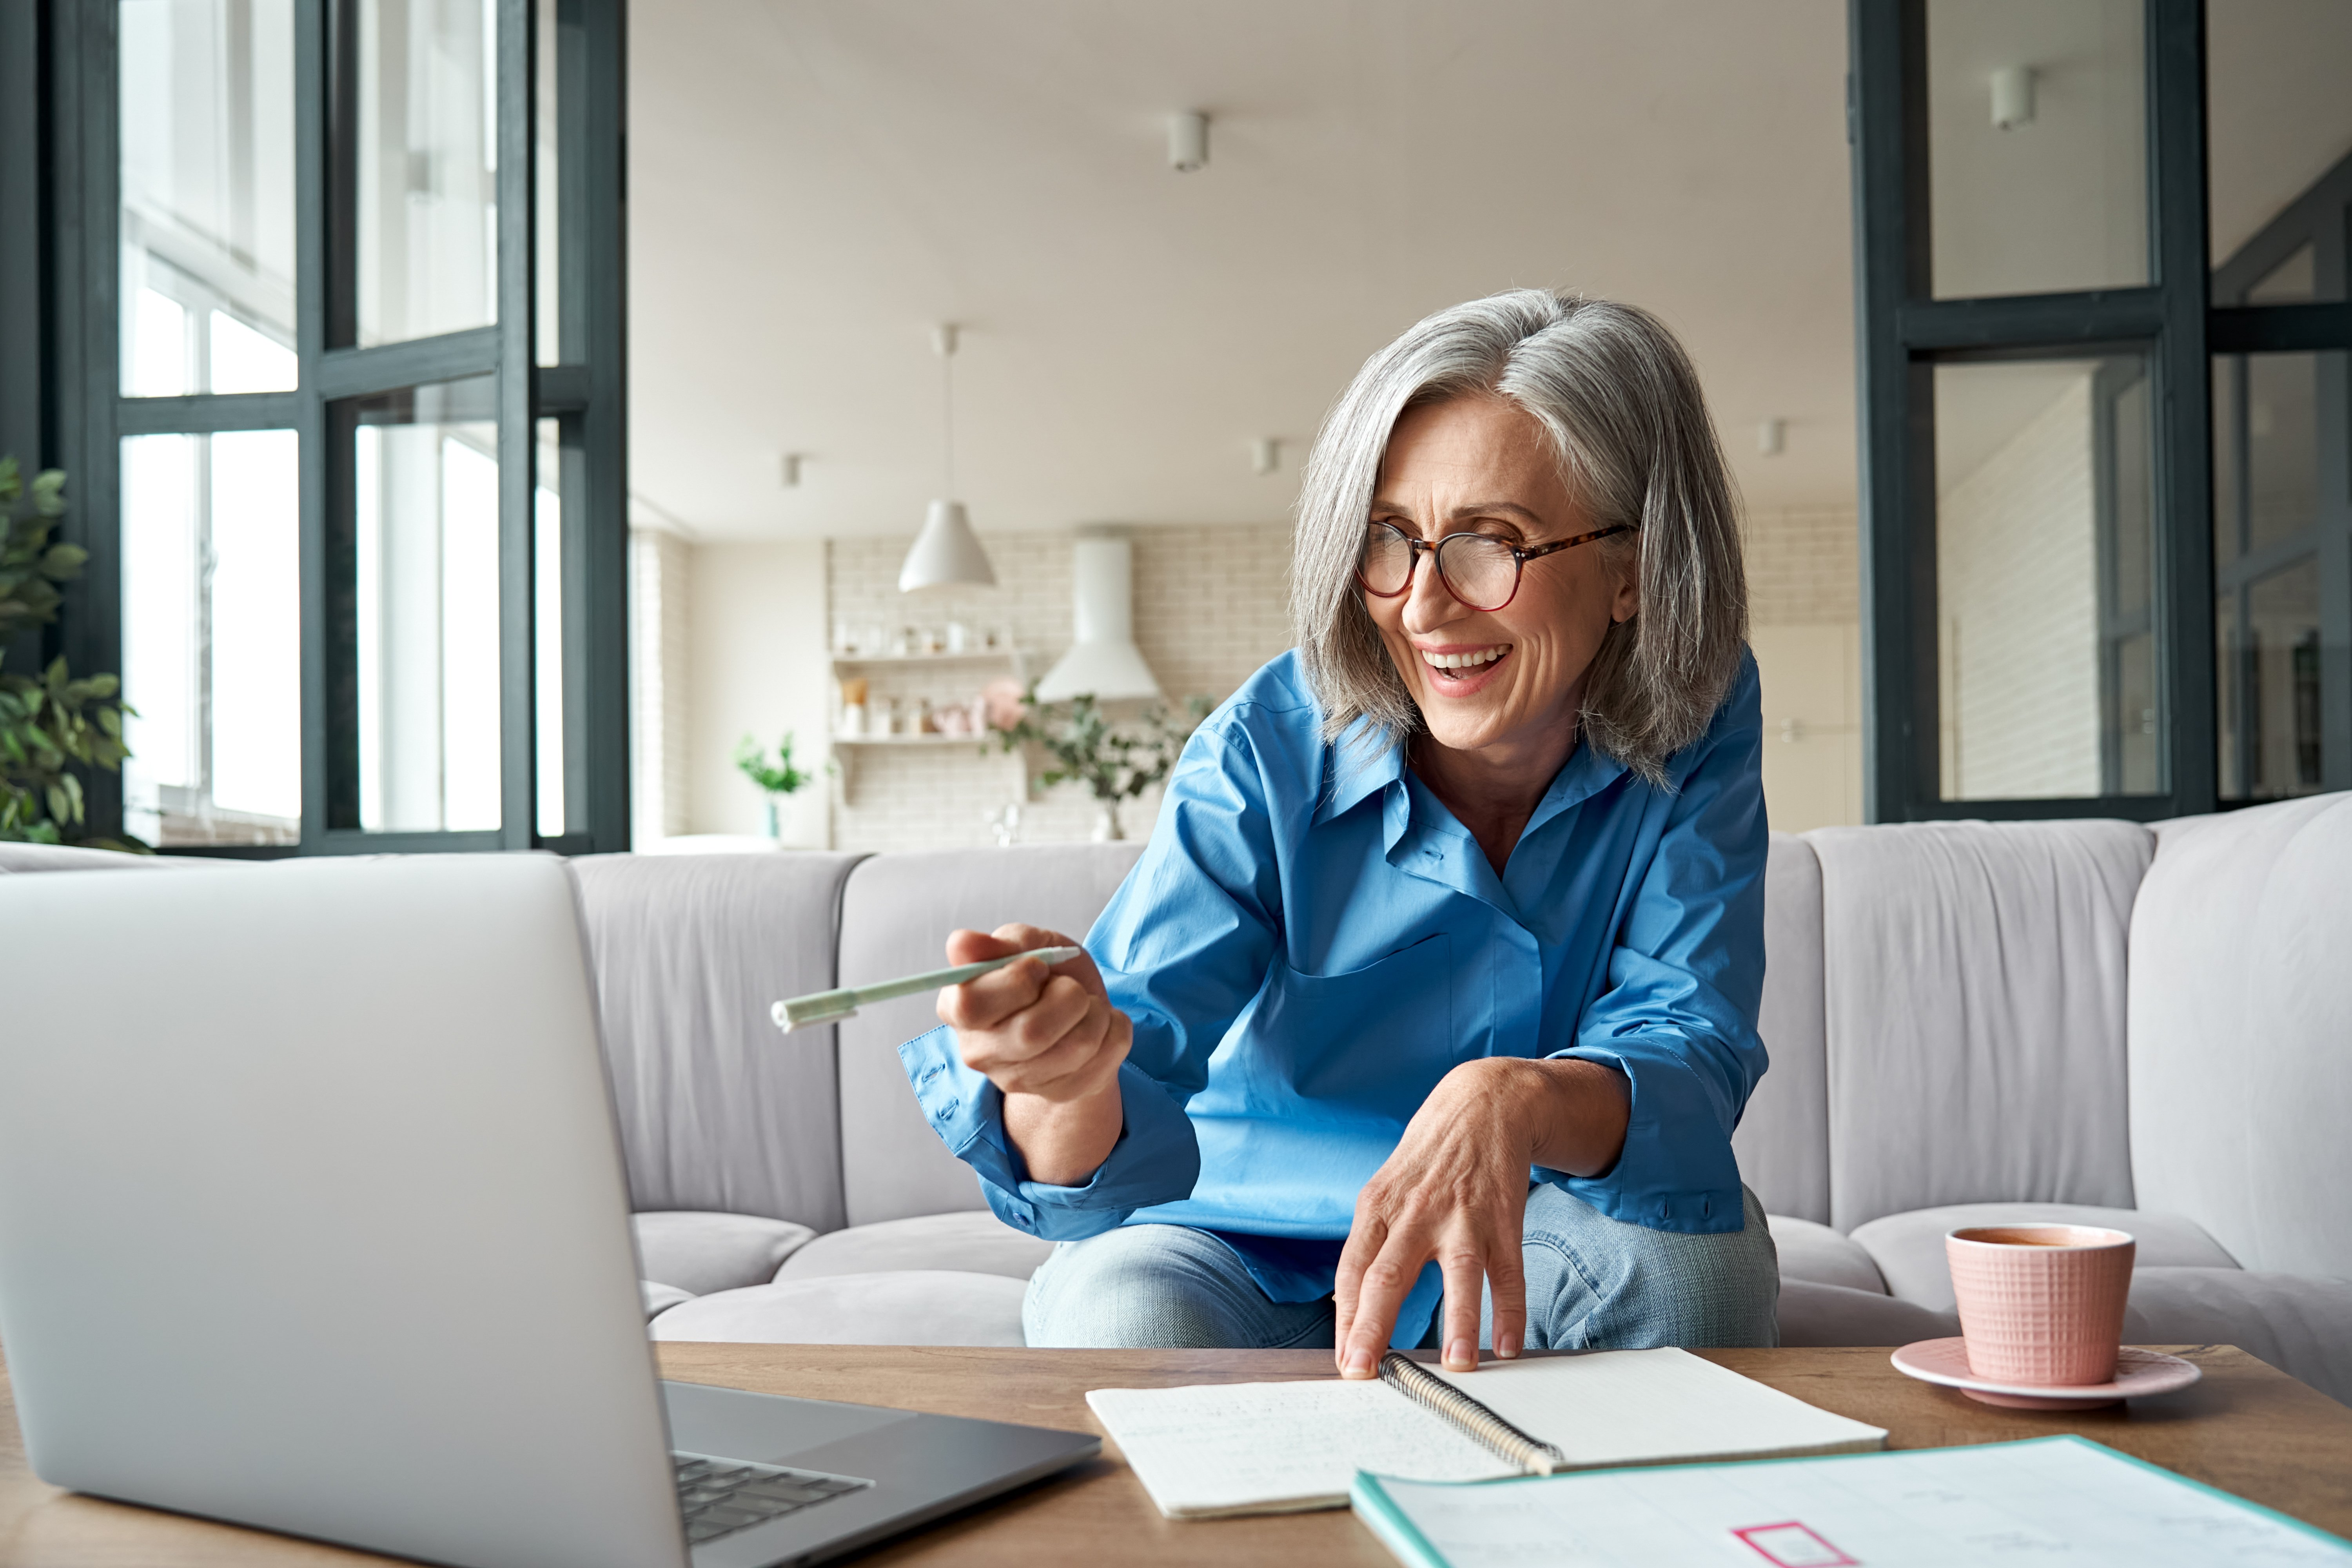 Older woman having a working lunch with coworkers over video chat